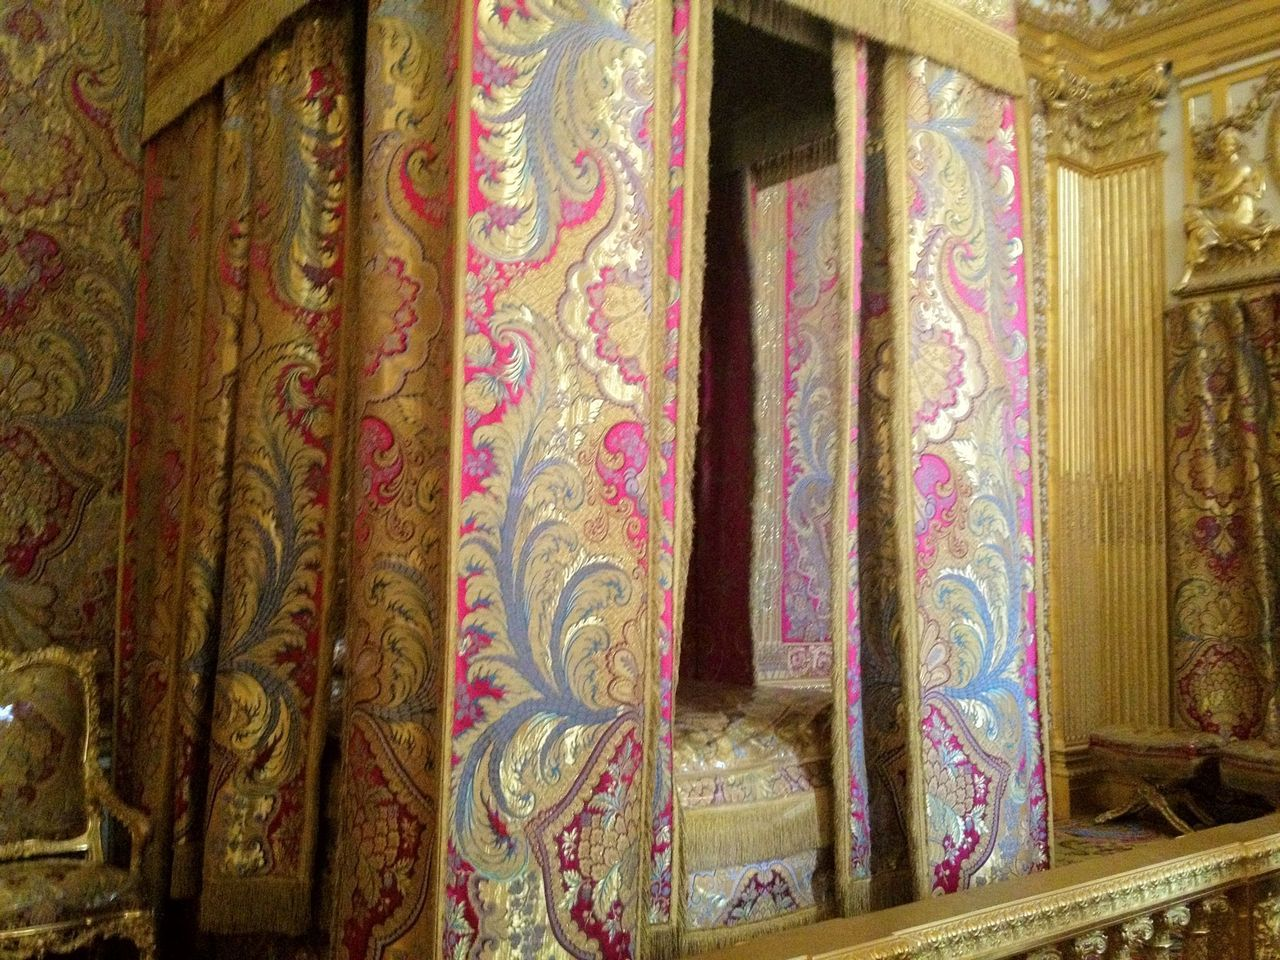 Paris, France; Château de Versailles - The King's Chamber